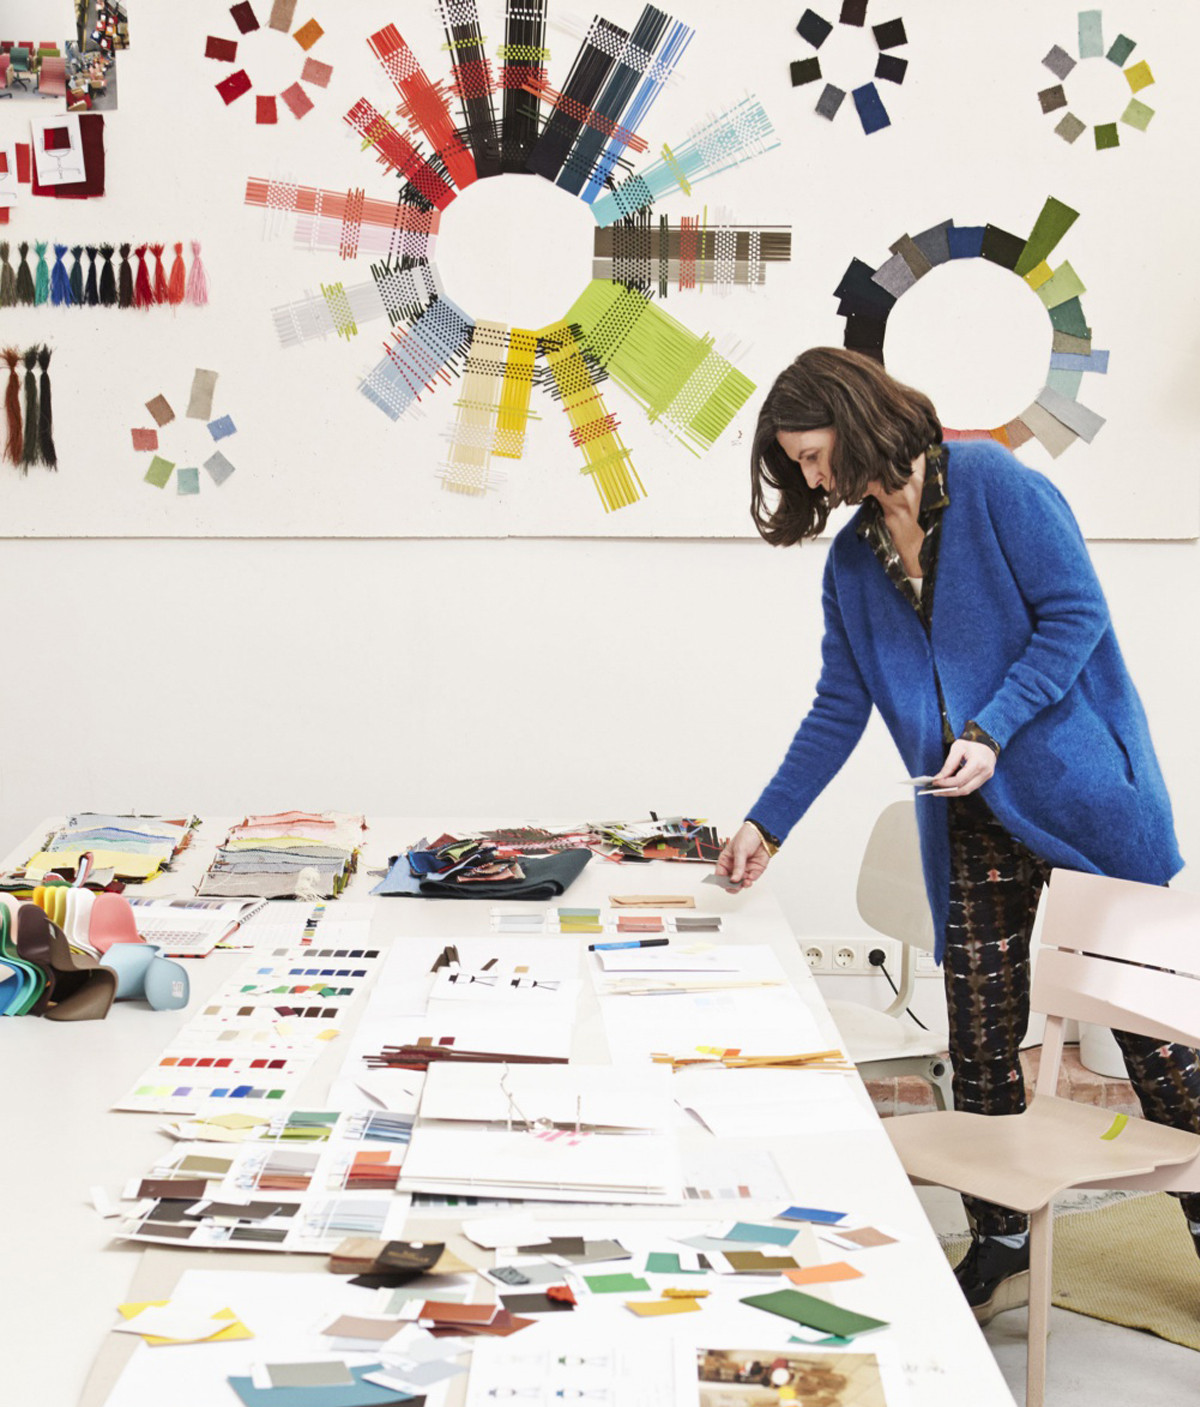 Dutch designer Hella Jongerius in her studio